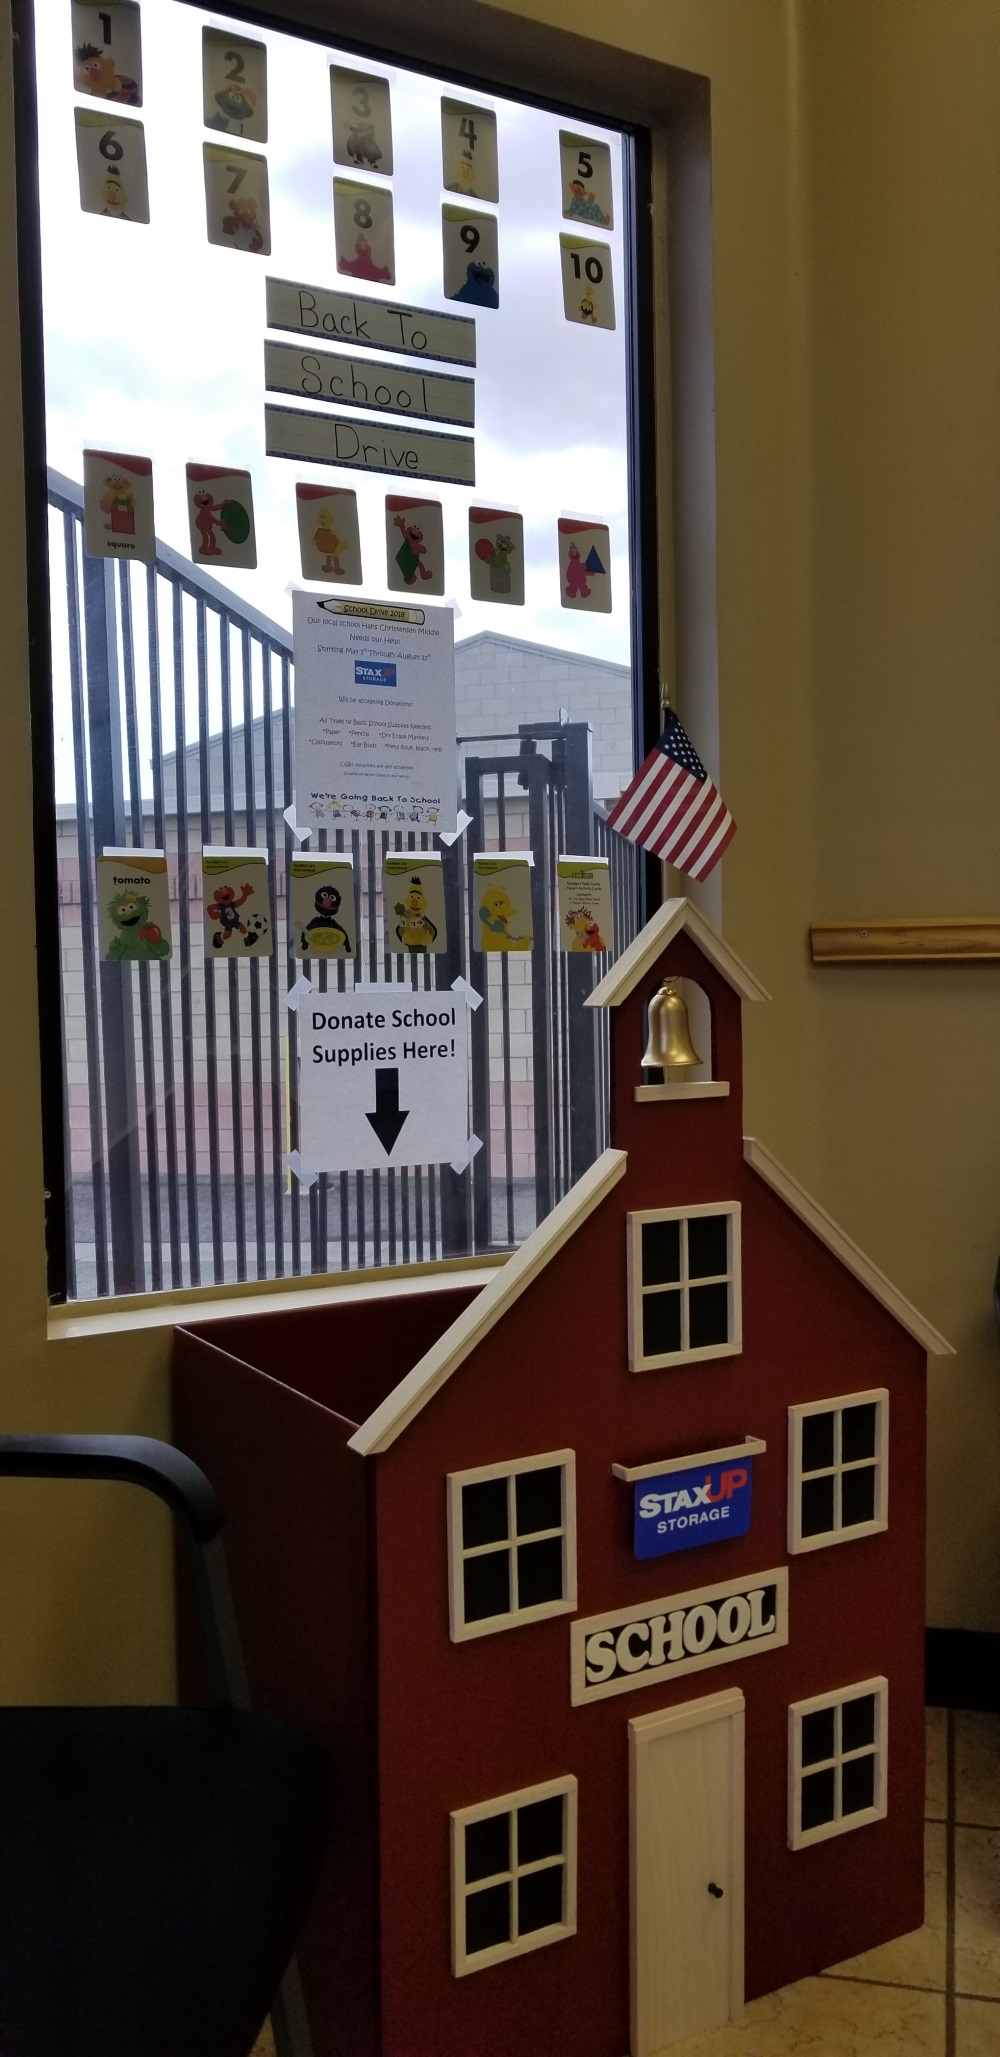 A donation box has been decorated to look like a 1-room schoolhouse.